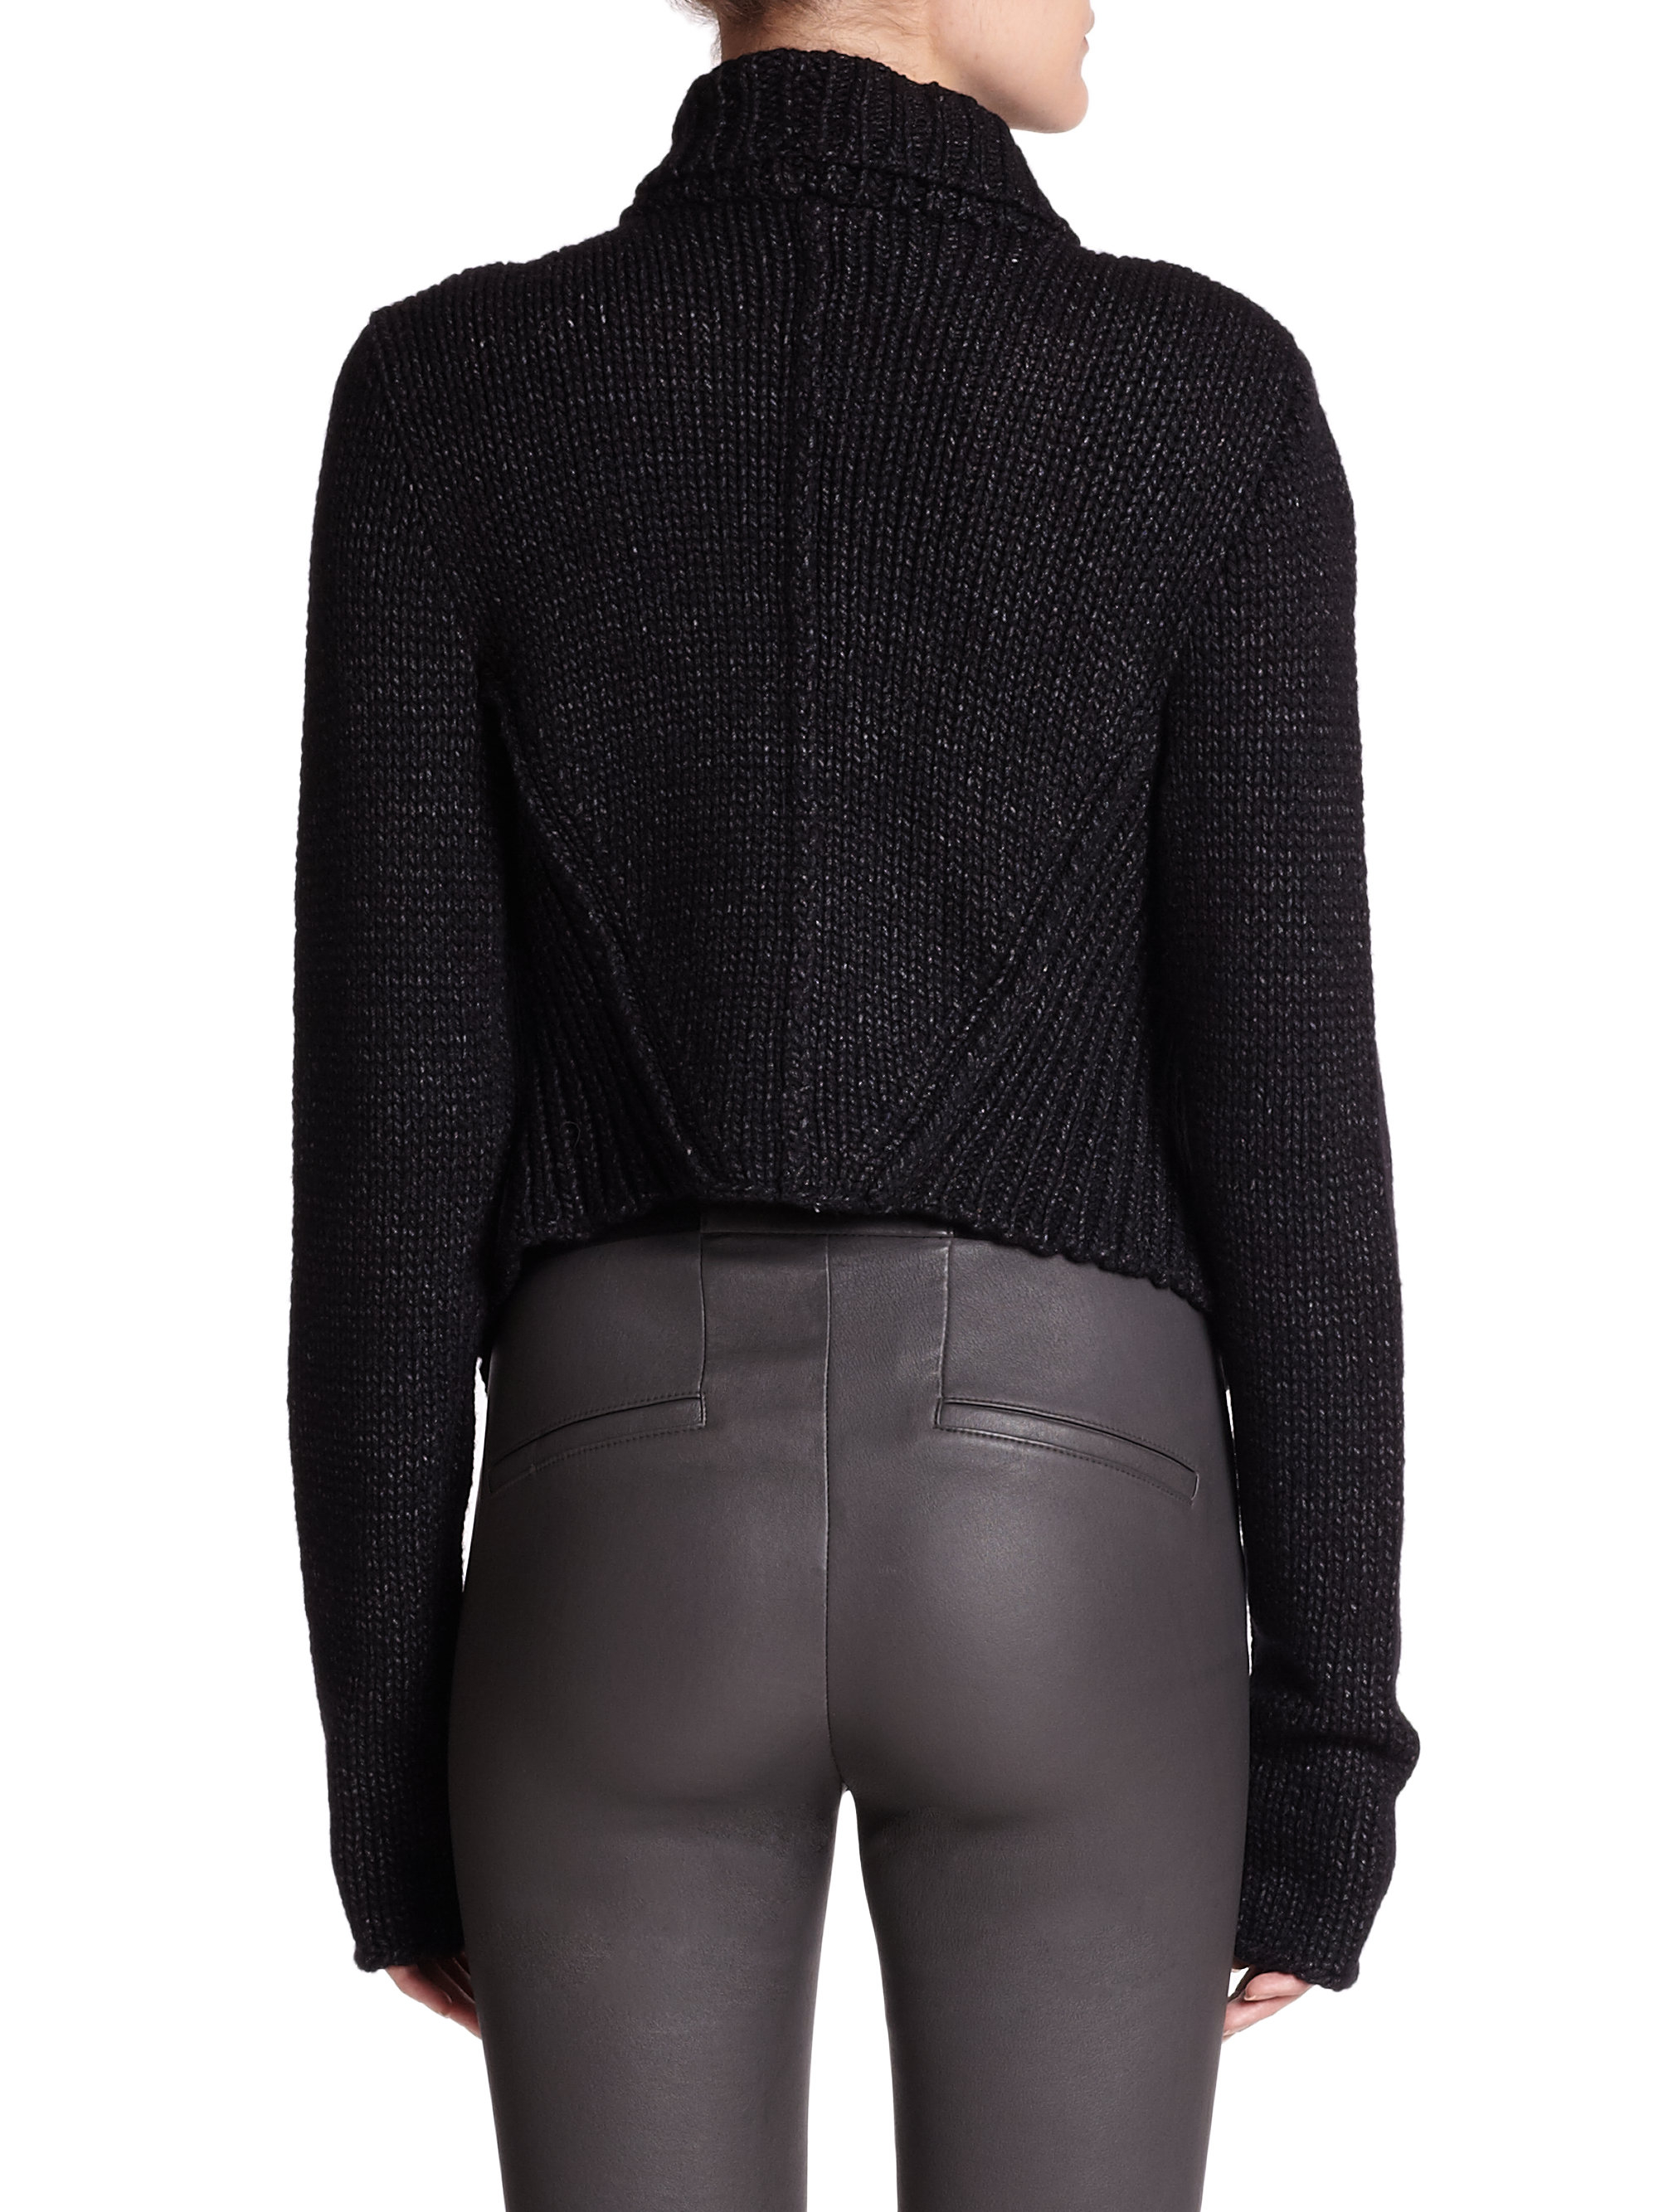 Helmut lang Ocacity Draped Chunky-Knit Cardigan in Black | Lyst